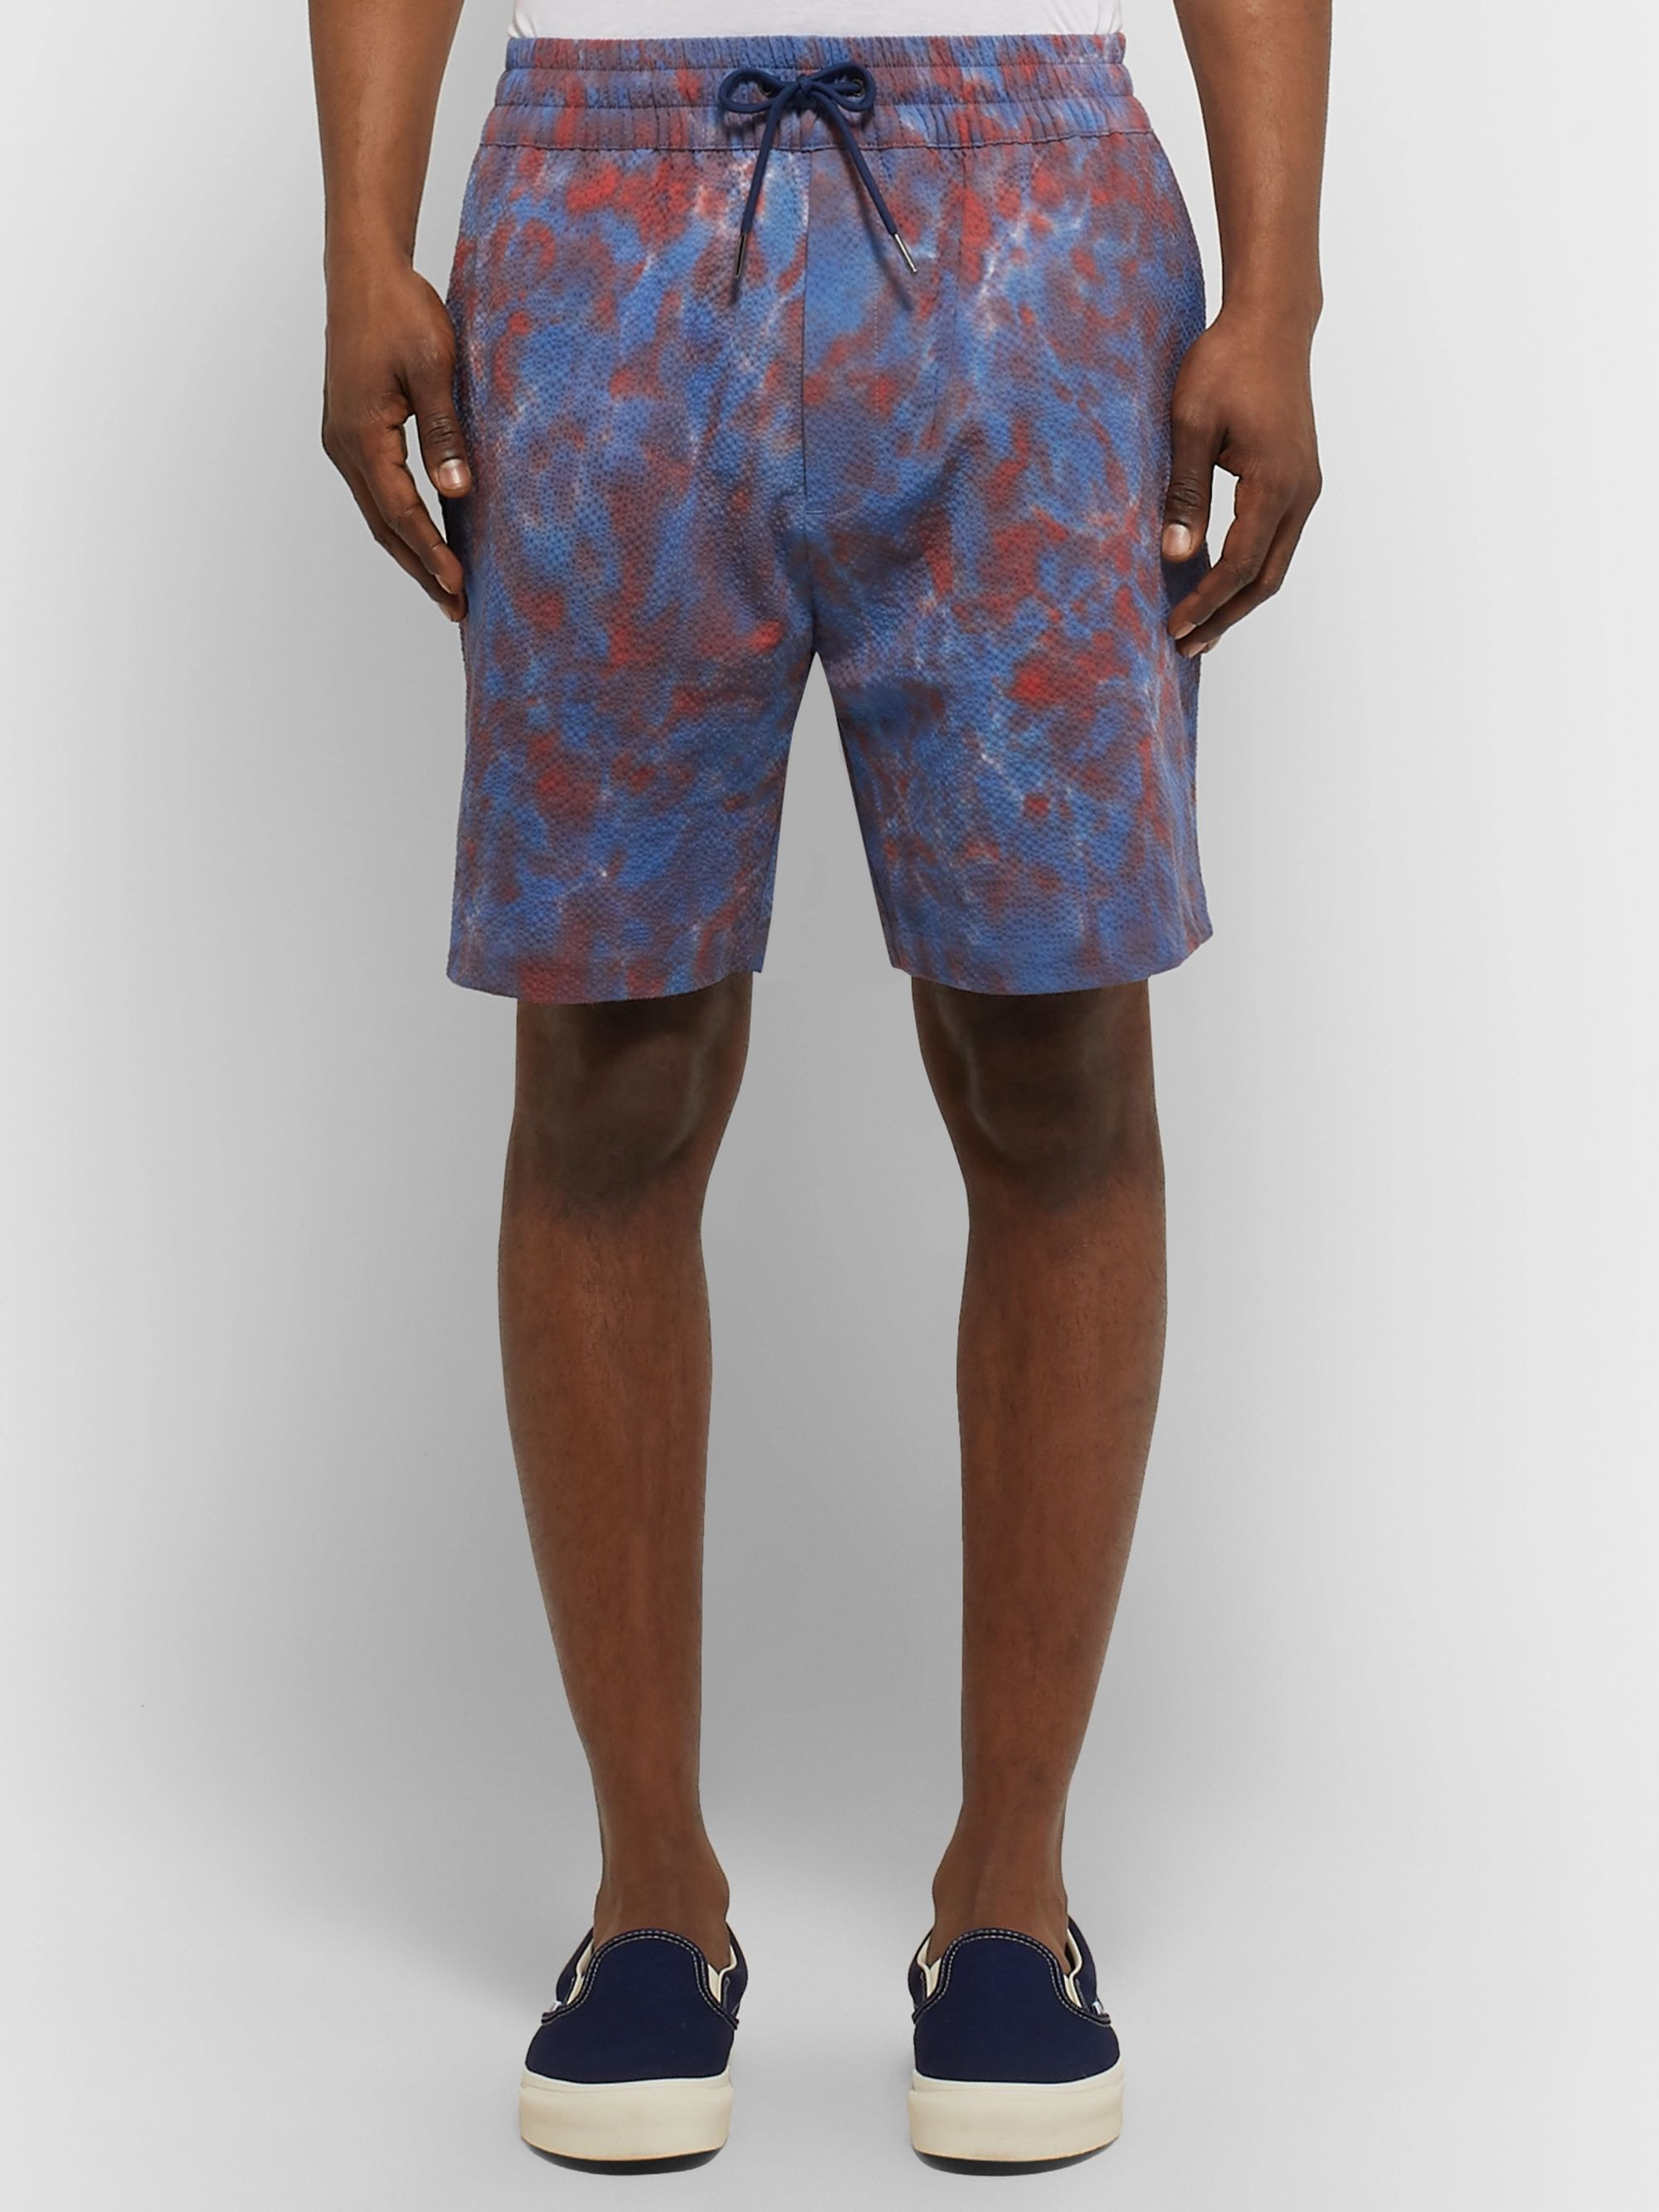 Aimé Leon Dore Tie-Dyed Cotton-Blend Seersucker Drawstring Shorts